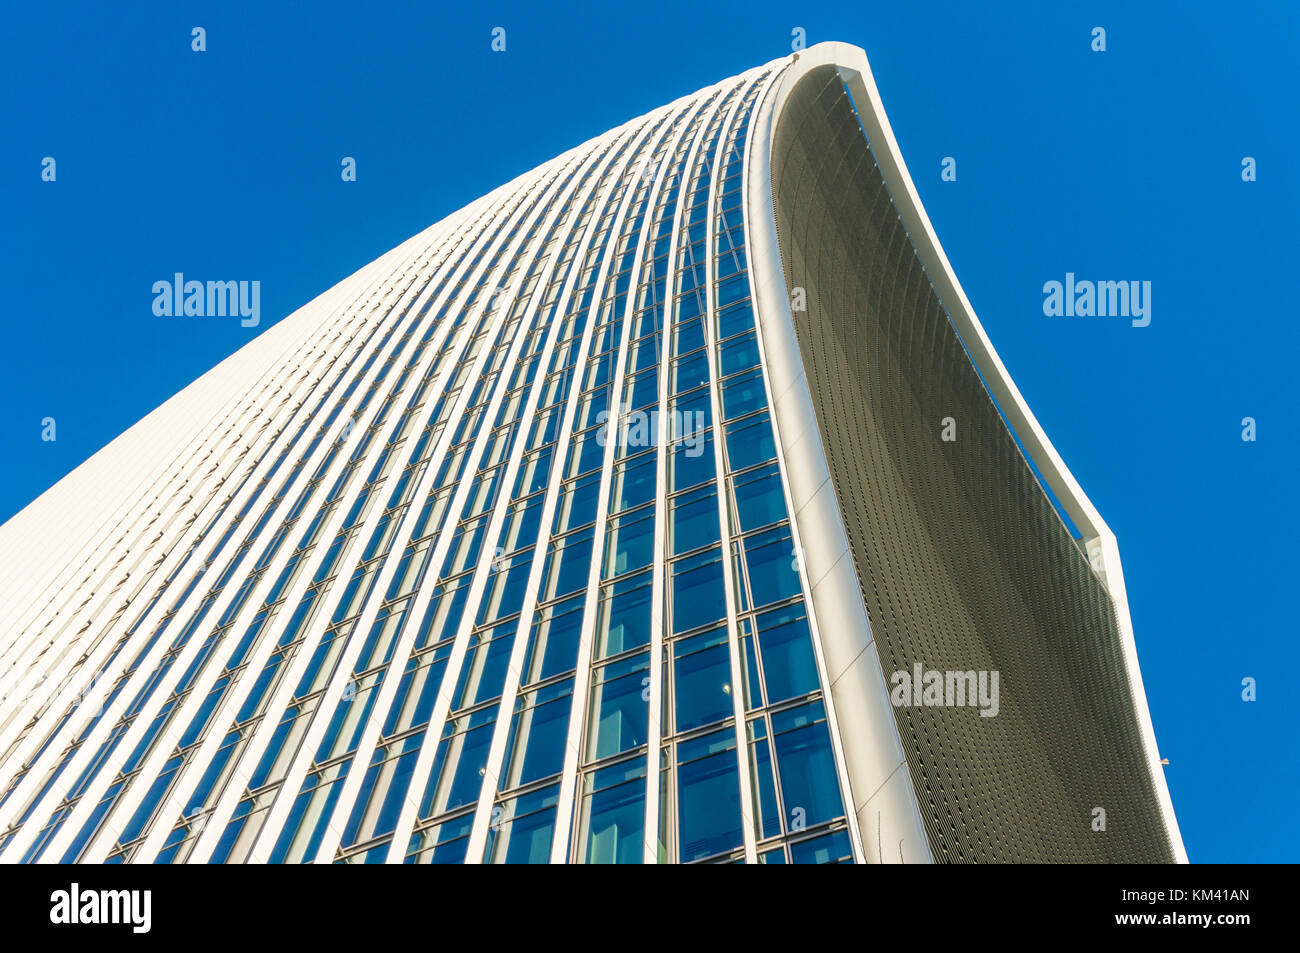 England London England city of London The Walkie talkie building skyscraper or 20 Fenchurch Street City of London - Stock Image